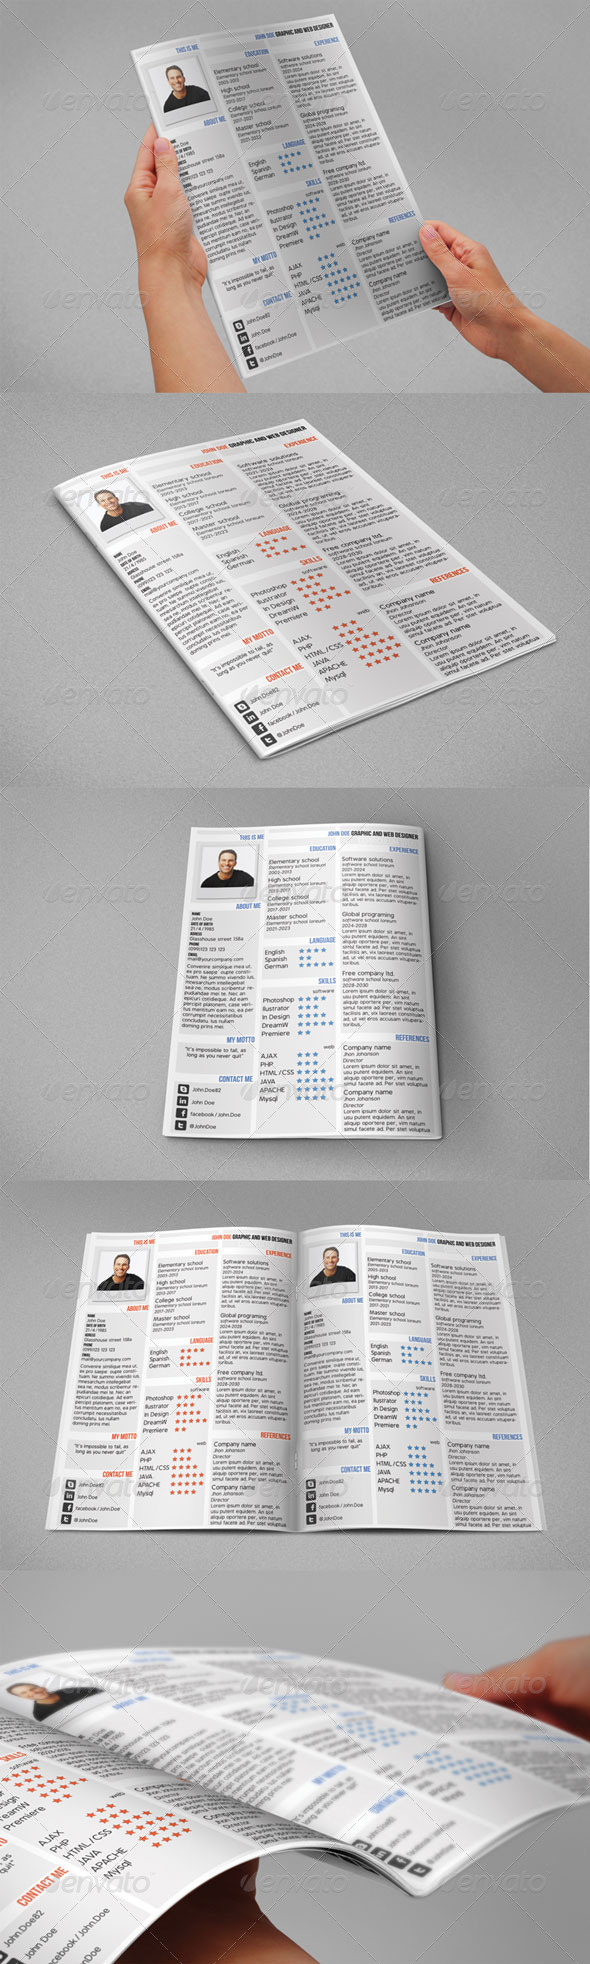 GraphicRiver The Best CV 5361165